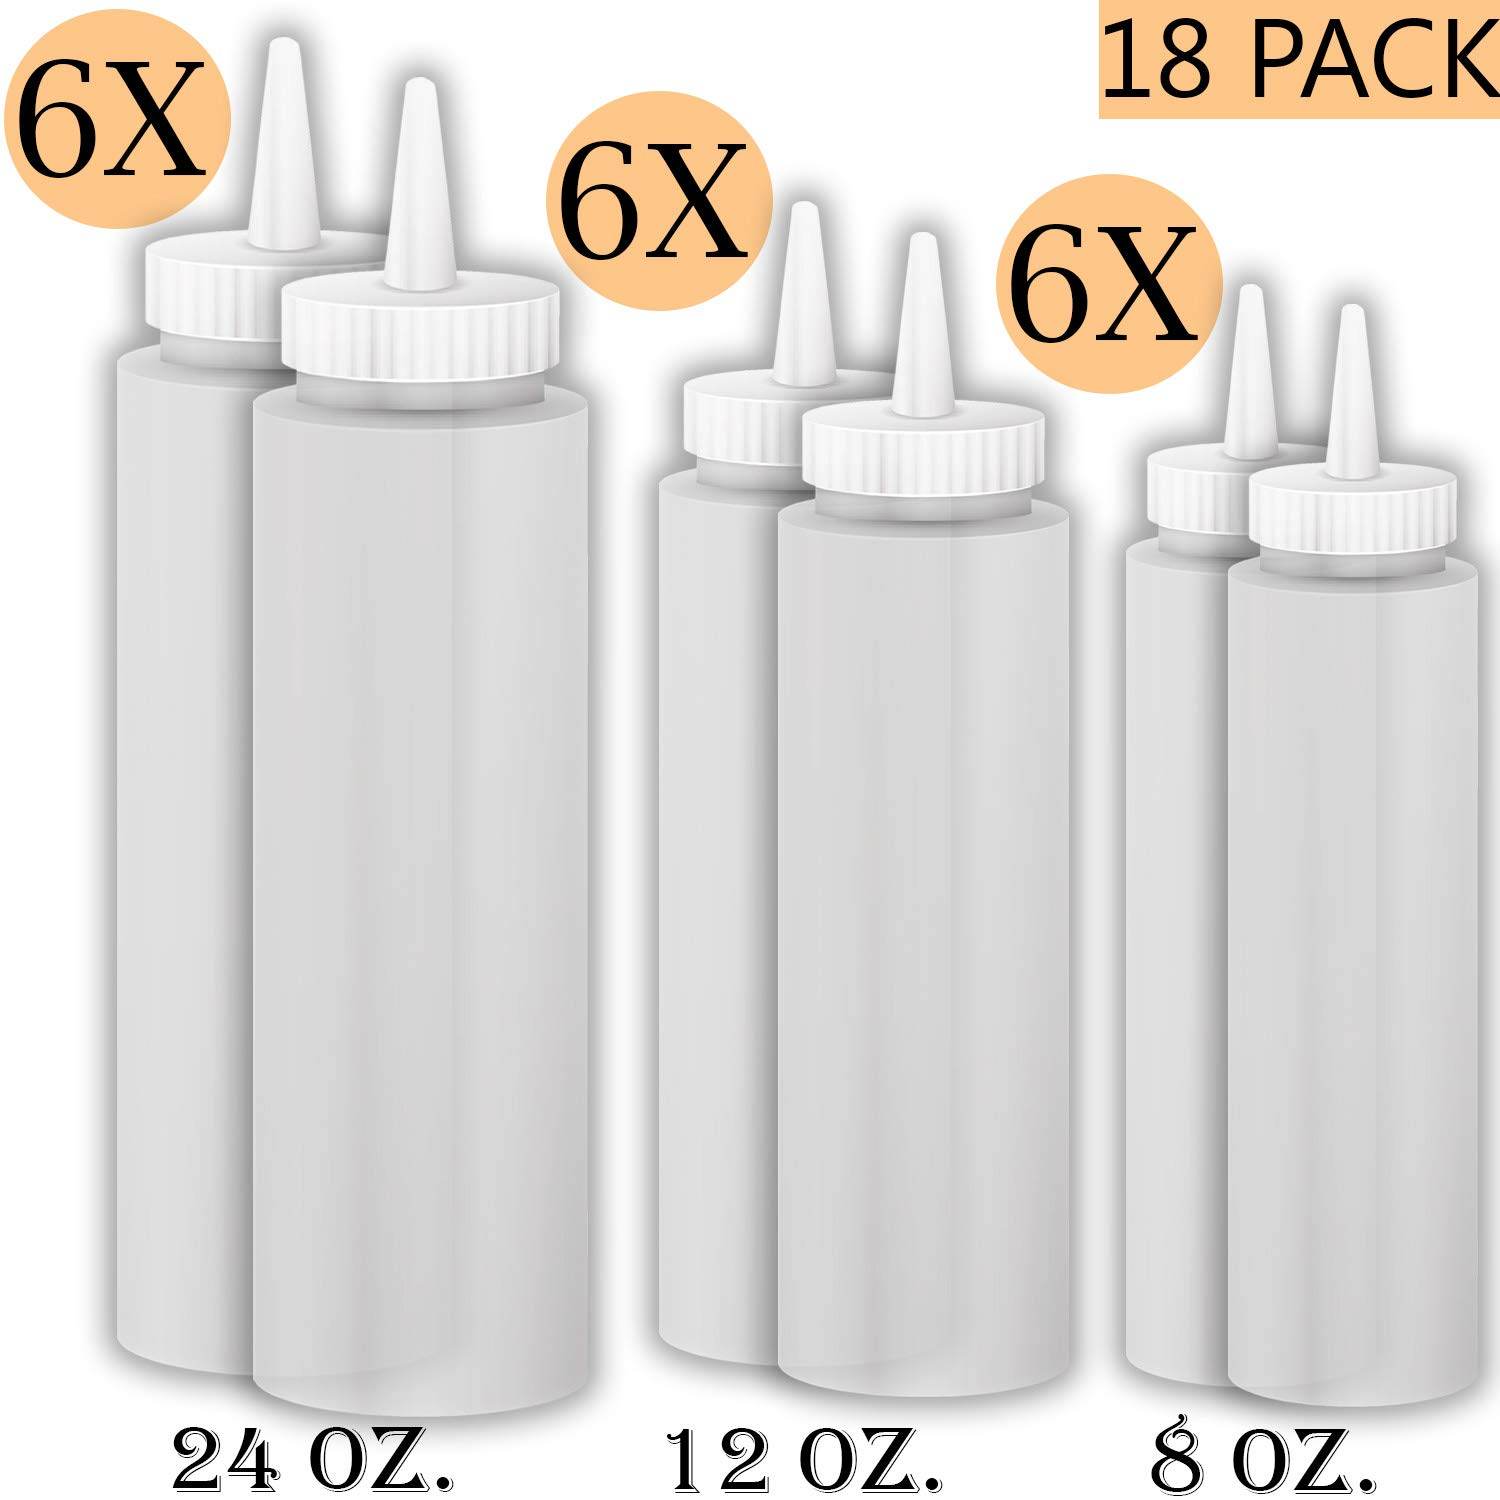 Squeeze Bottle Kit - Includes Squeeze Bottles for Sauces in 8oz, 12oz and 24oz, 6 of each size, Plastic Bottles Are Clear, Multi use - Sauce Bottles, squirt bottles, condiment bottle, 18 Pack.